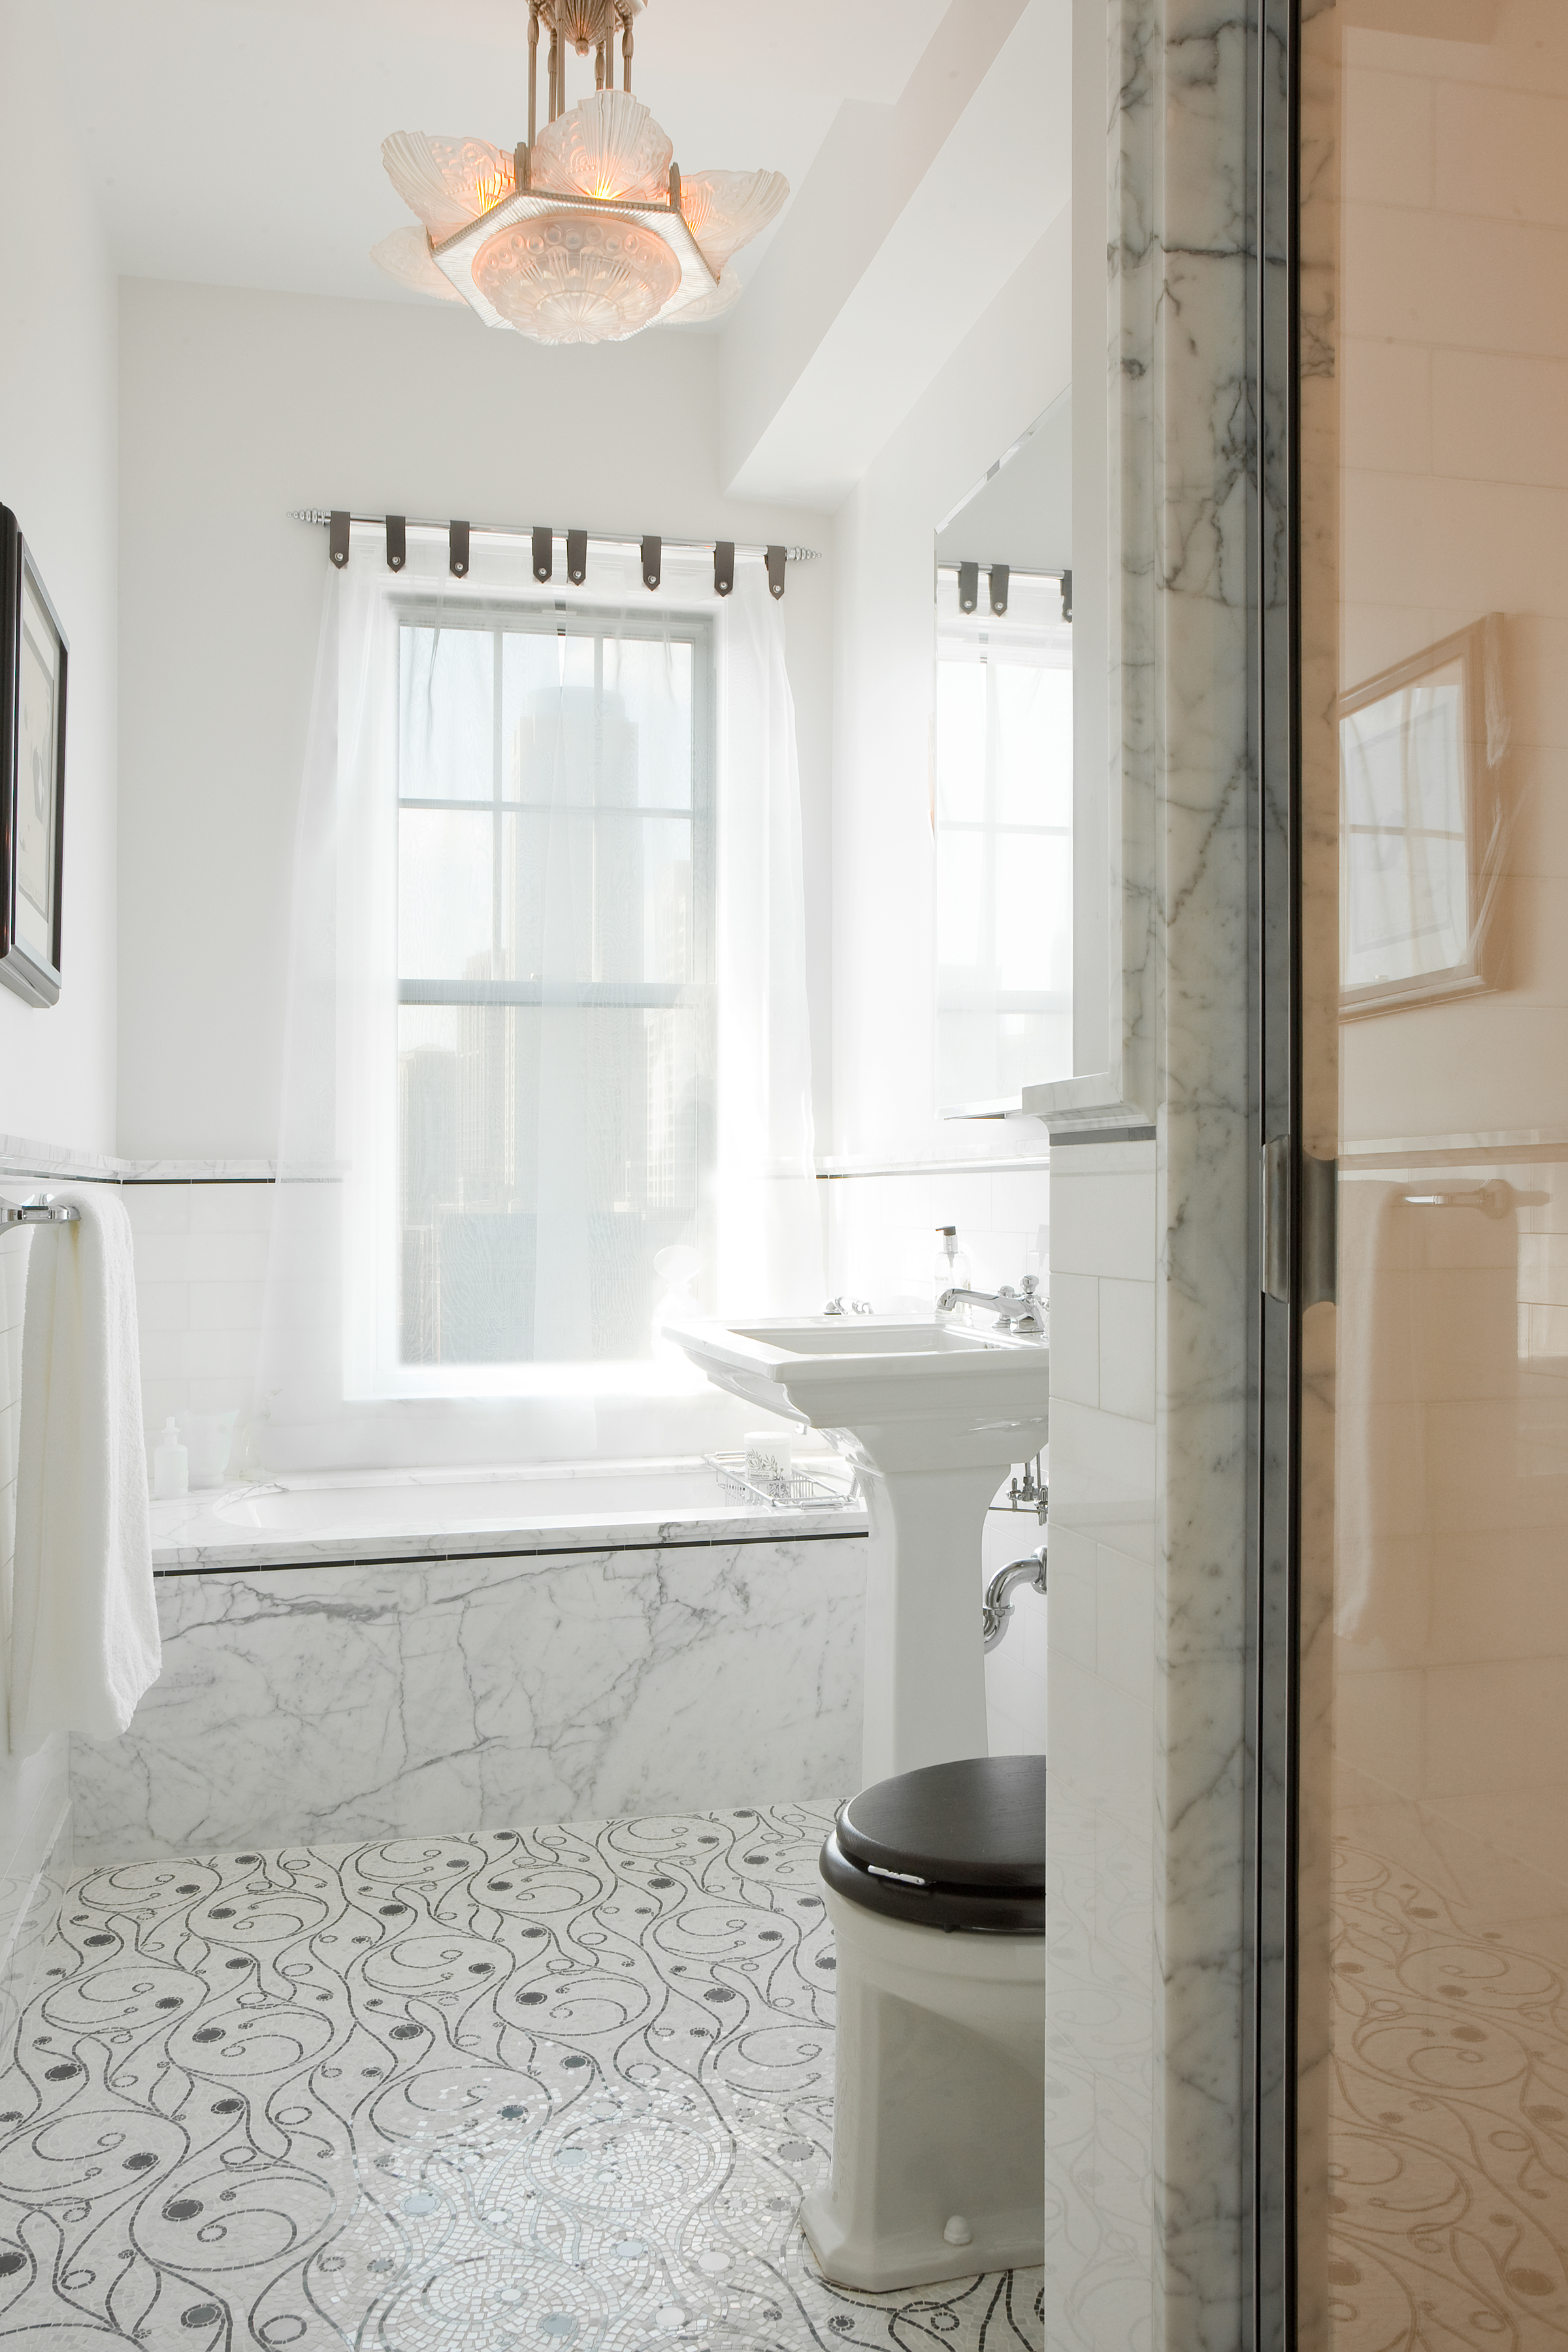 Modern residential architecture. In the hall bath, the mosaic pattern was used on the floor in combination with statuary marble and white tiled walls.